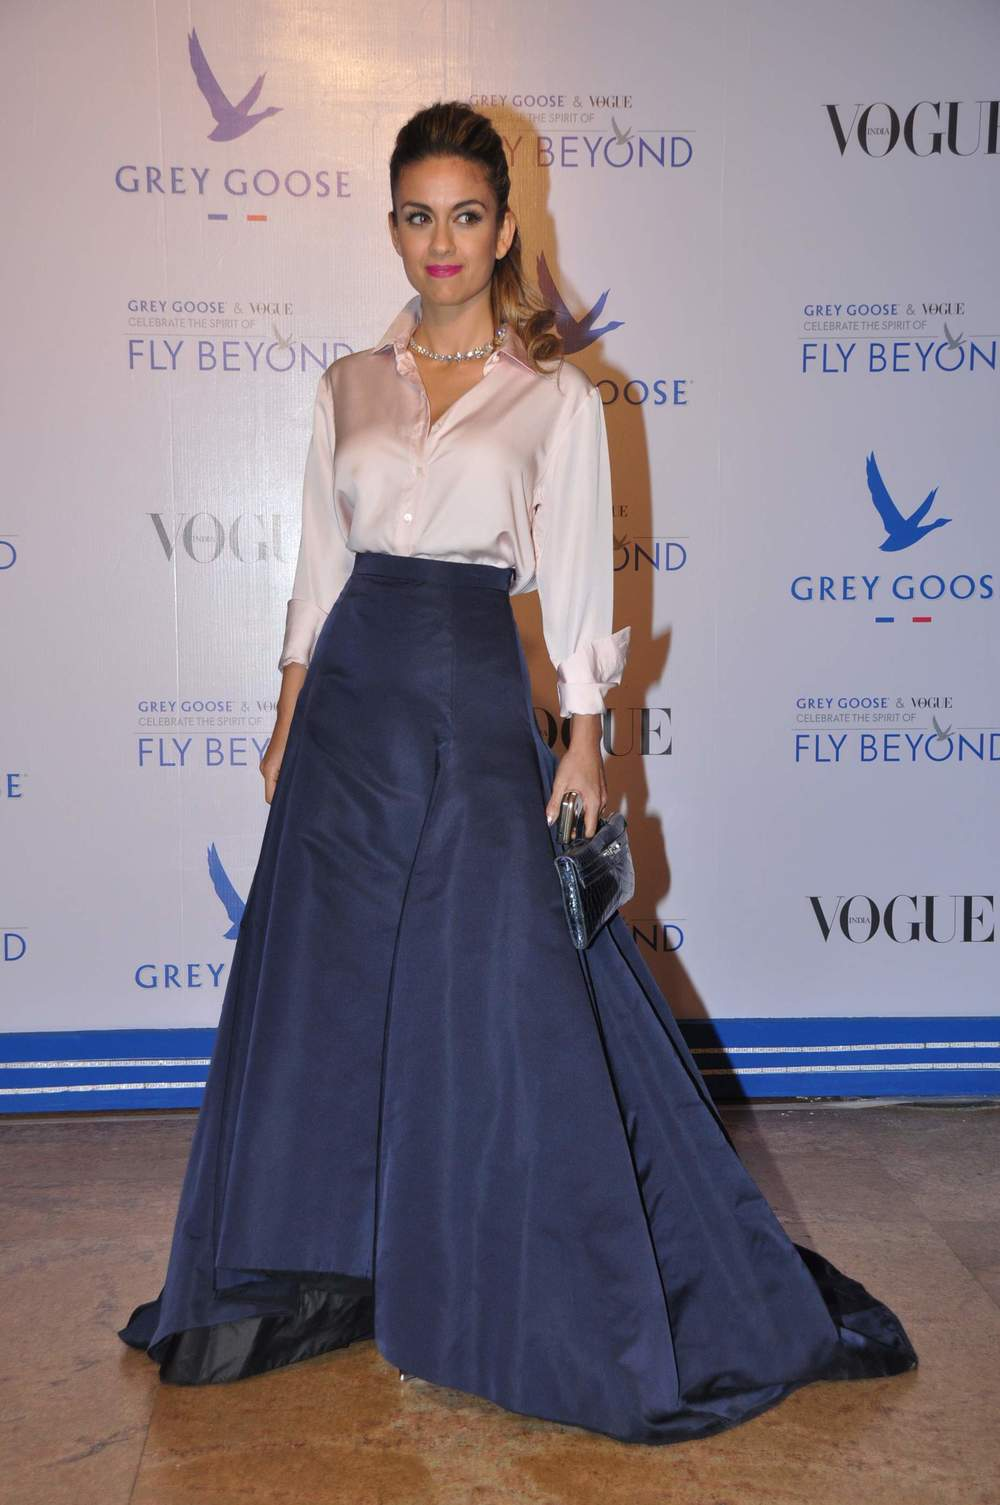 Natasha Poonawala carrying an Hermes Clutch